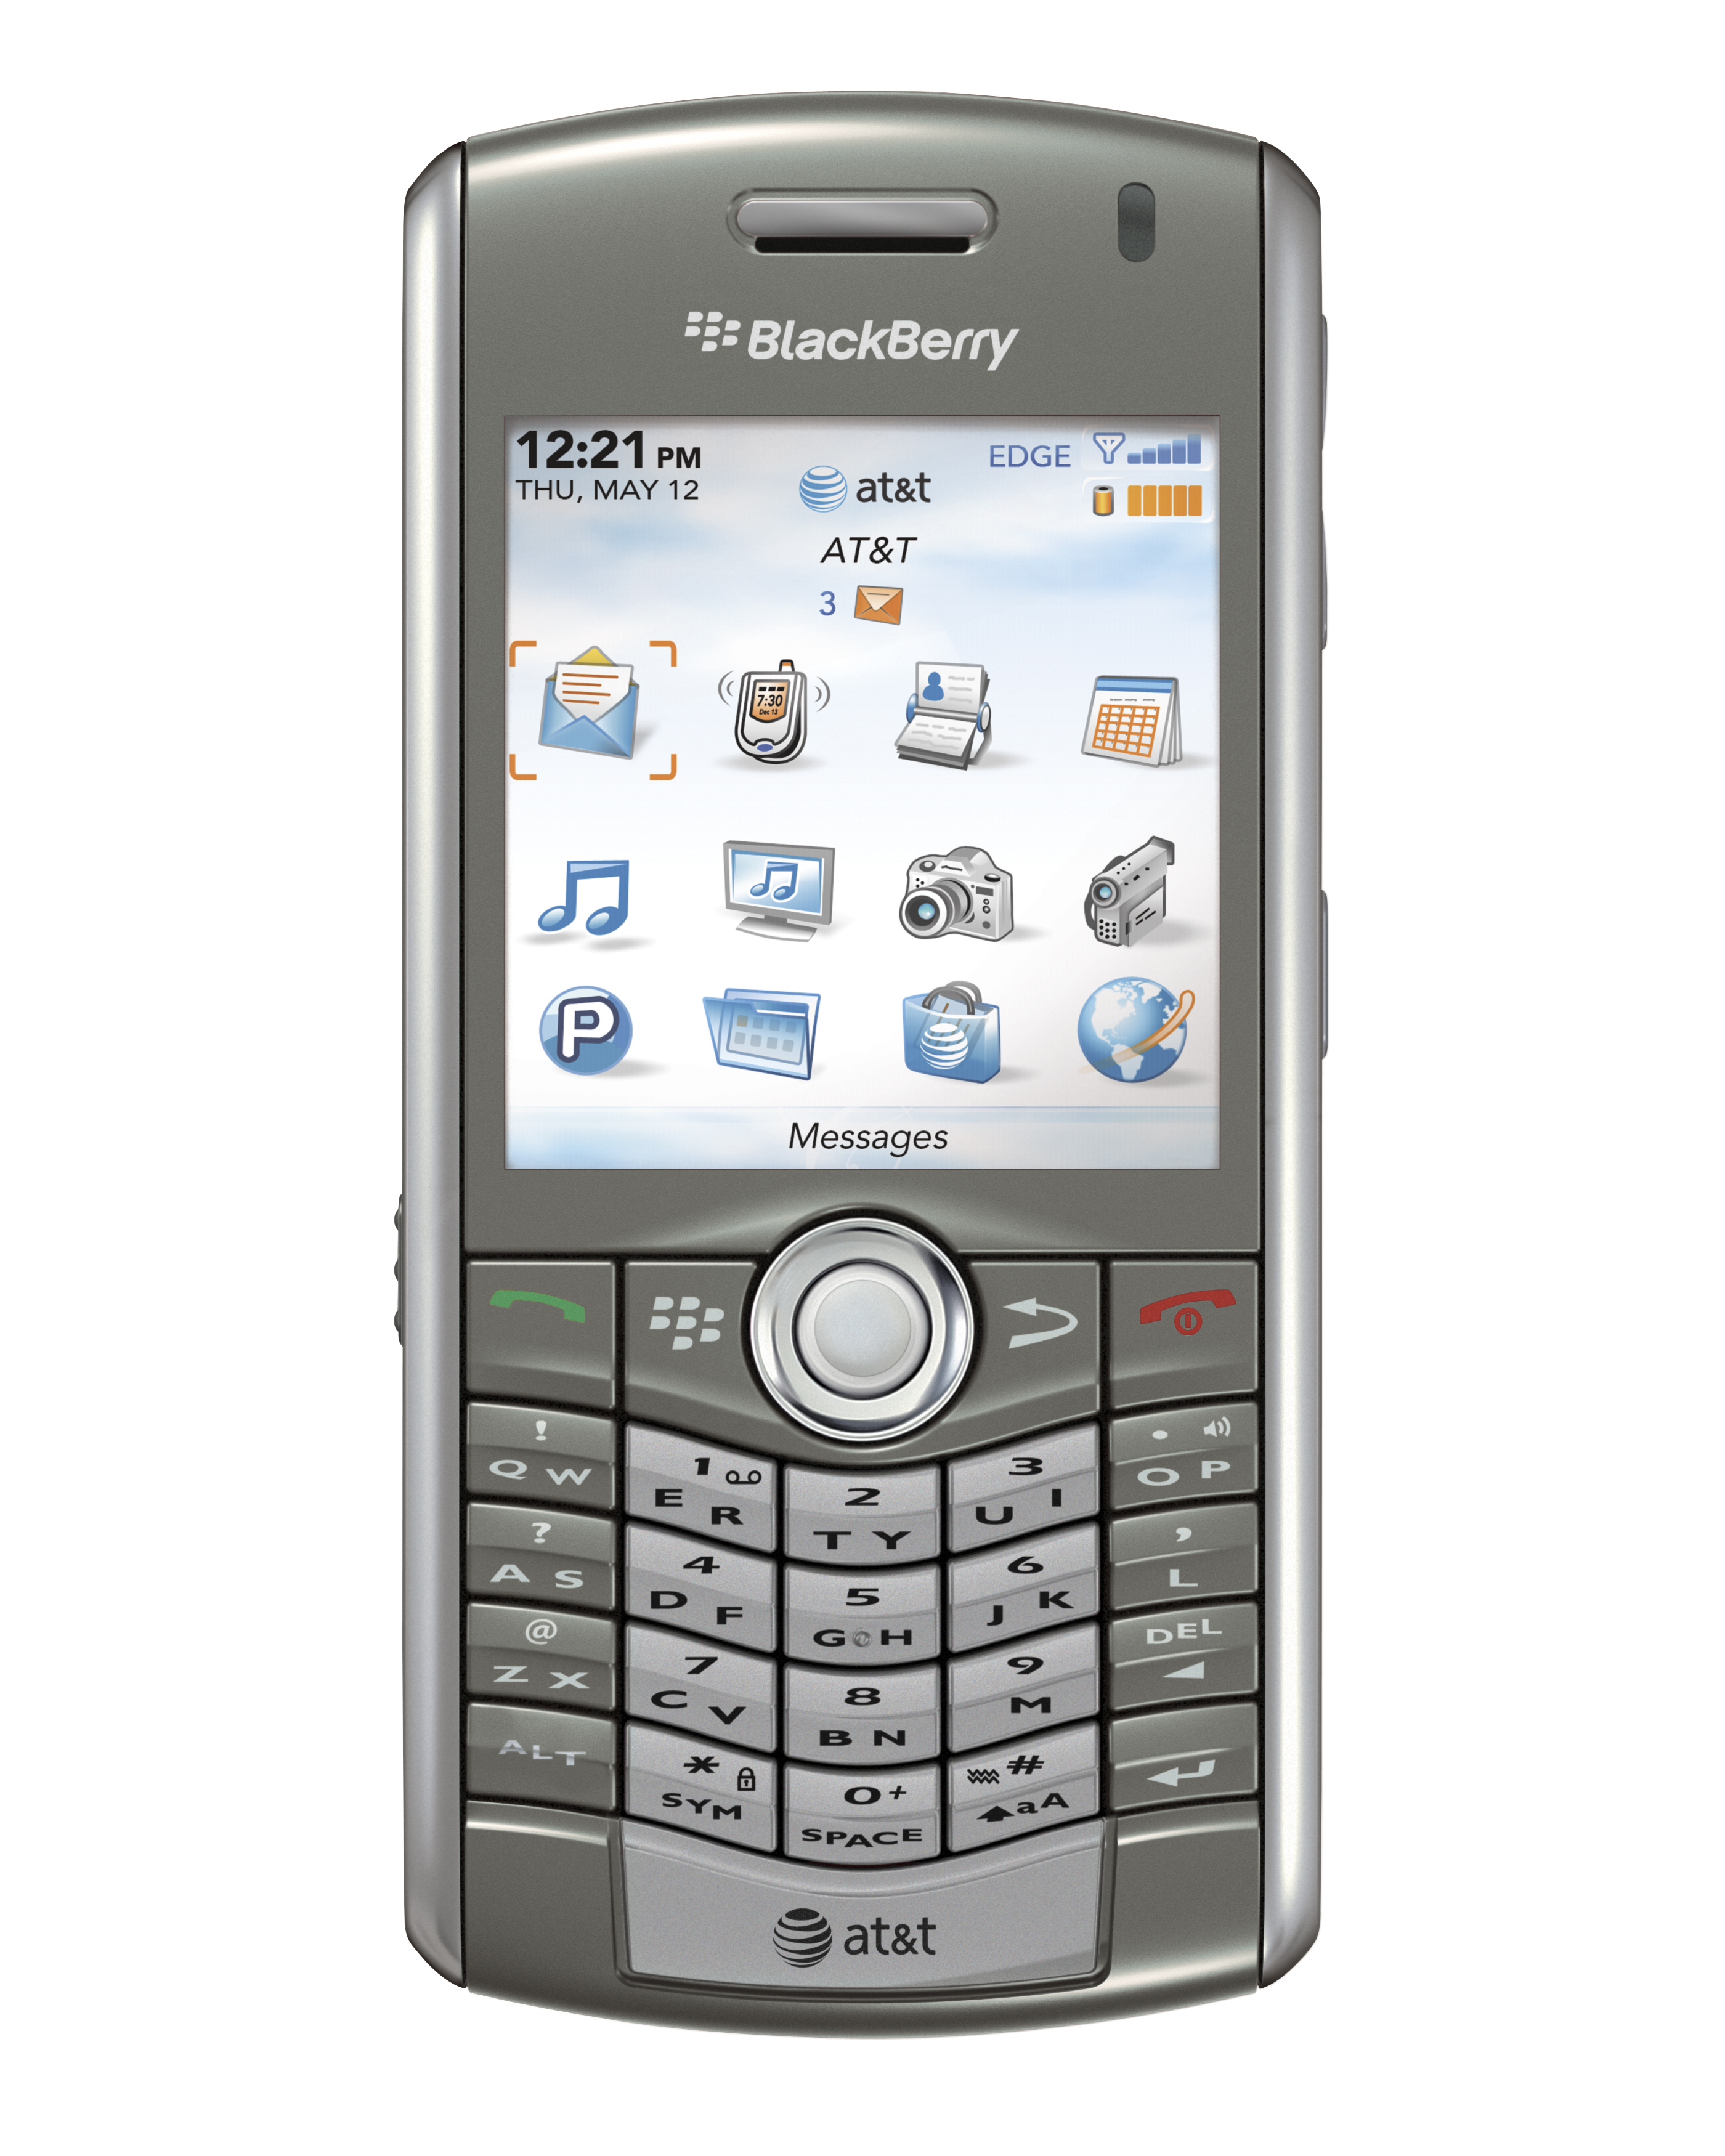 Blackberry pearl 8100 mobile phones images blackberry pearl 8100 - Rim Blackberry Pearl 8110 Front